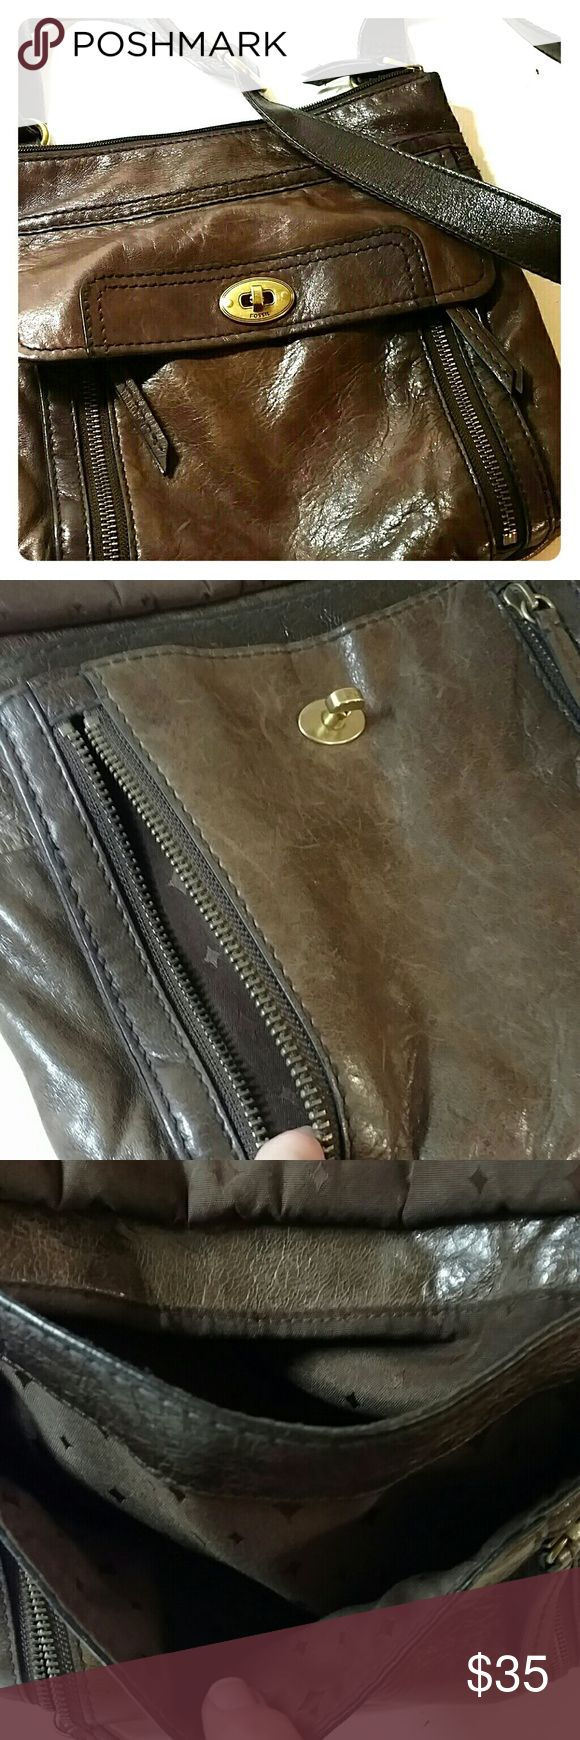 Fossil Cross Body bag Dark brown well worn leather, lots of pockets, back side has some darker coloring , see last photo Fossil Bags Crossbody Bags